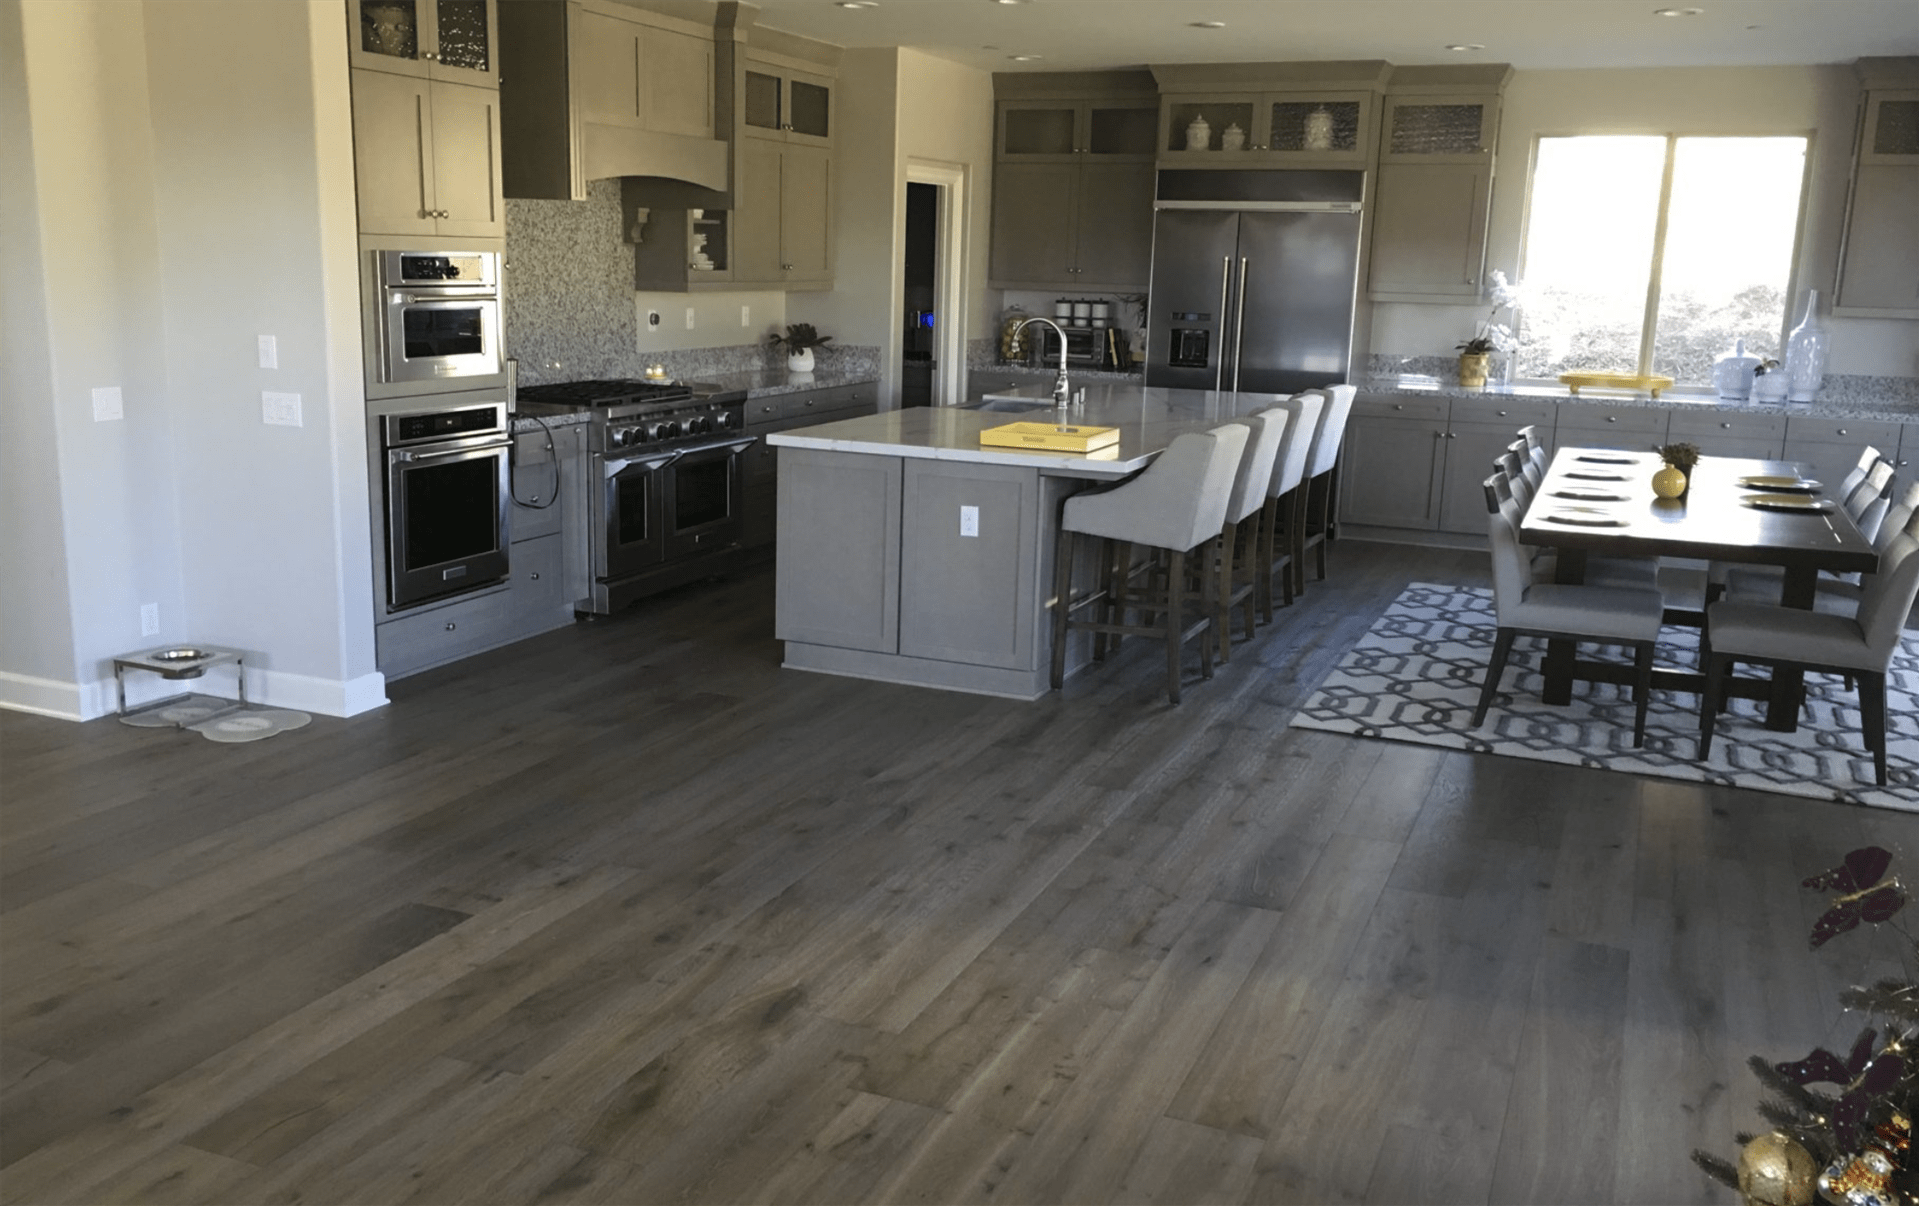 Kitchen and dining remodel in Yorba Linda, CA from TS Home Design Center / Rite Loom Flooring